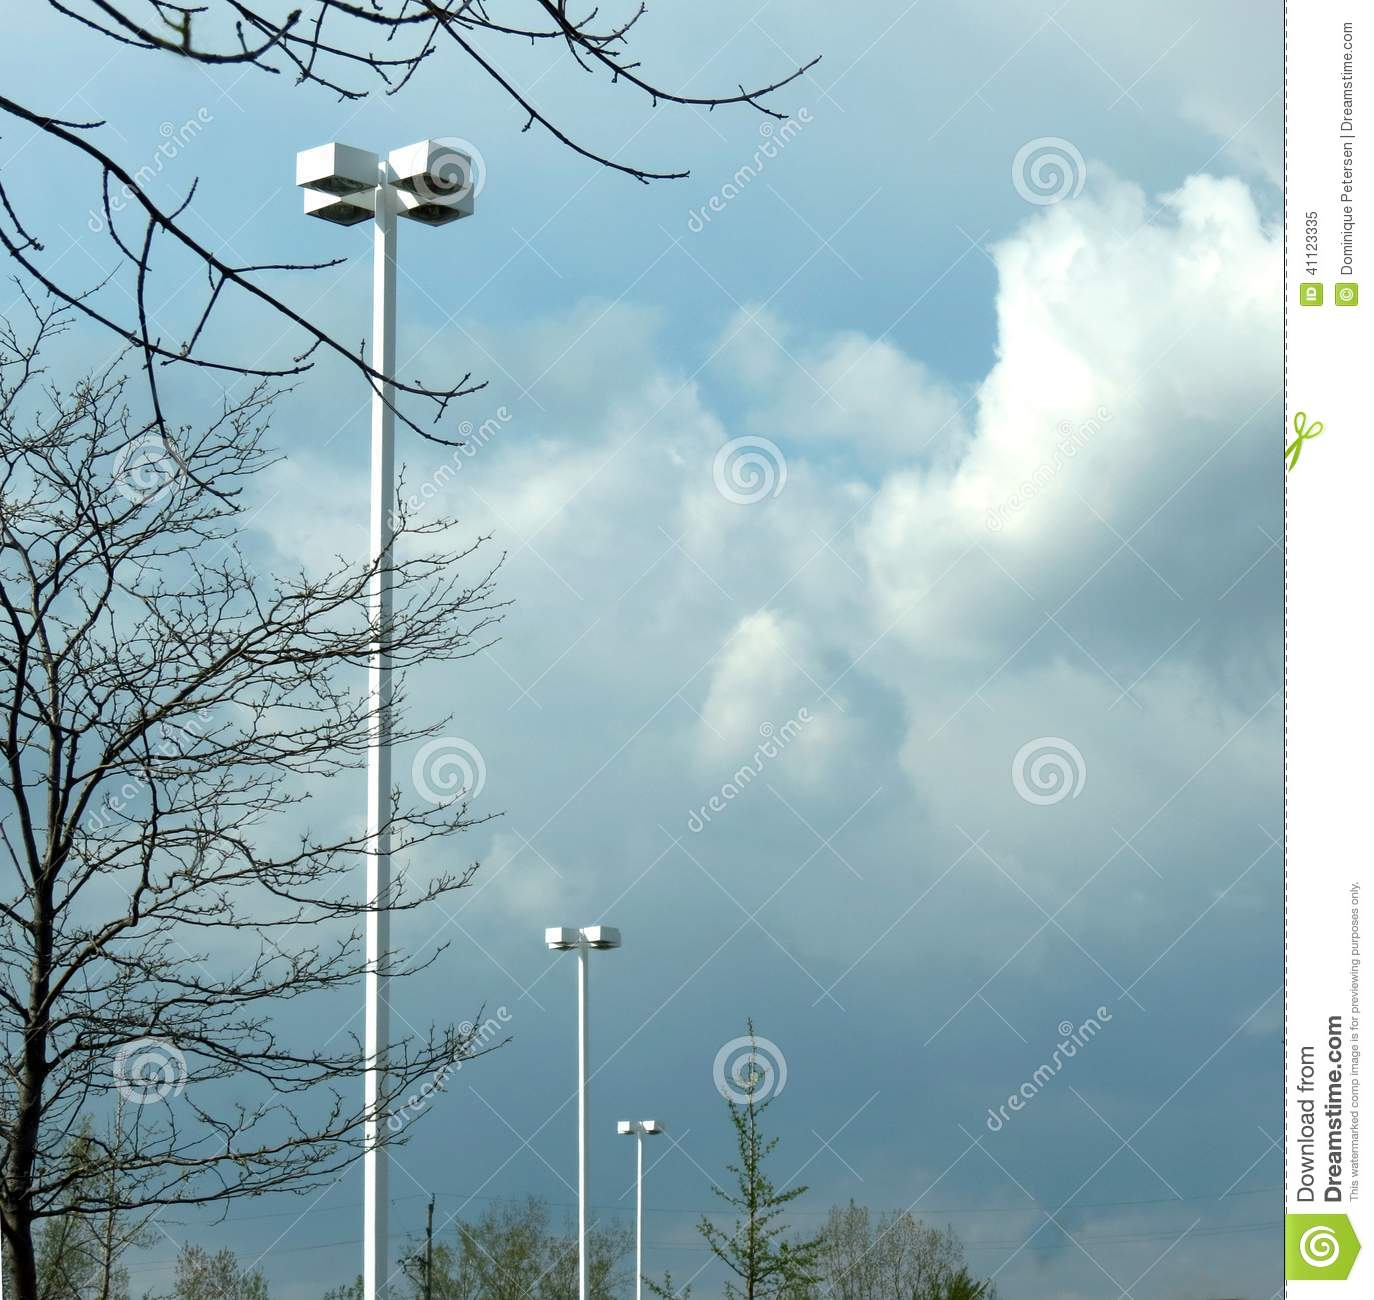 102 lighting standards photos free royalty free stock photos from dreamstime